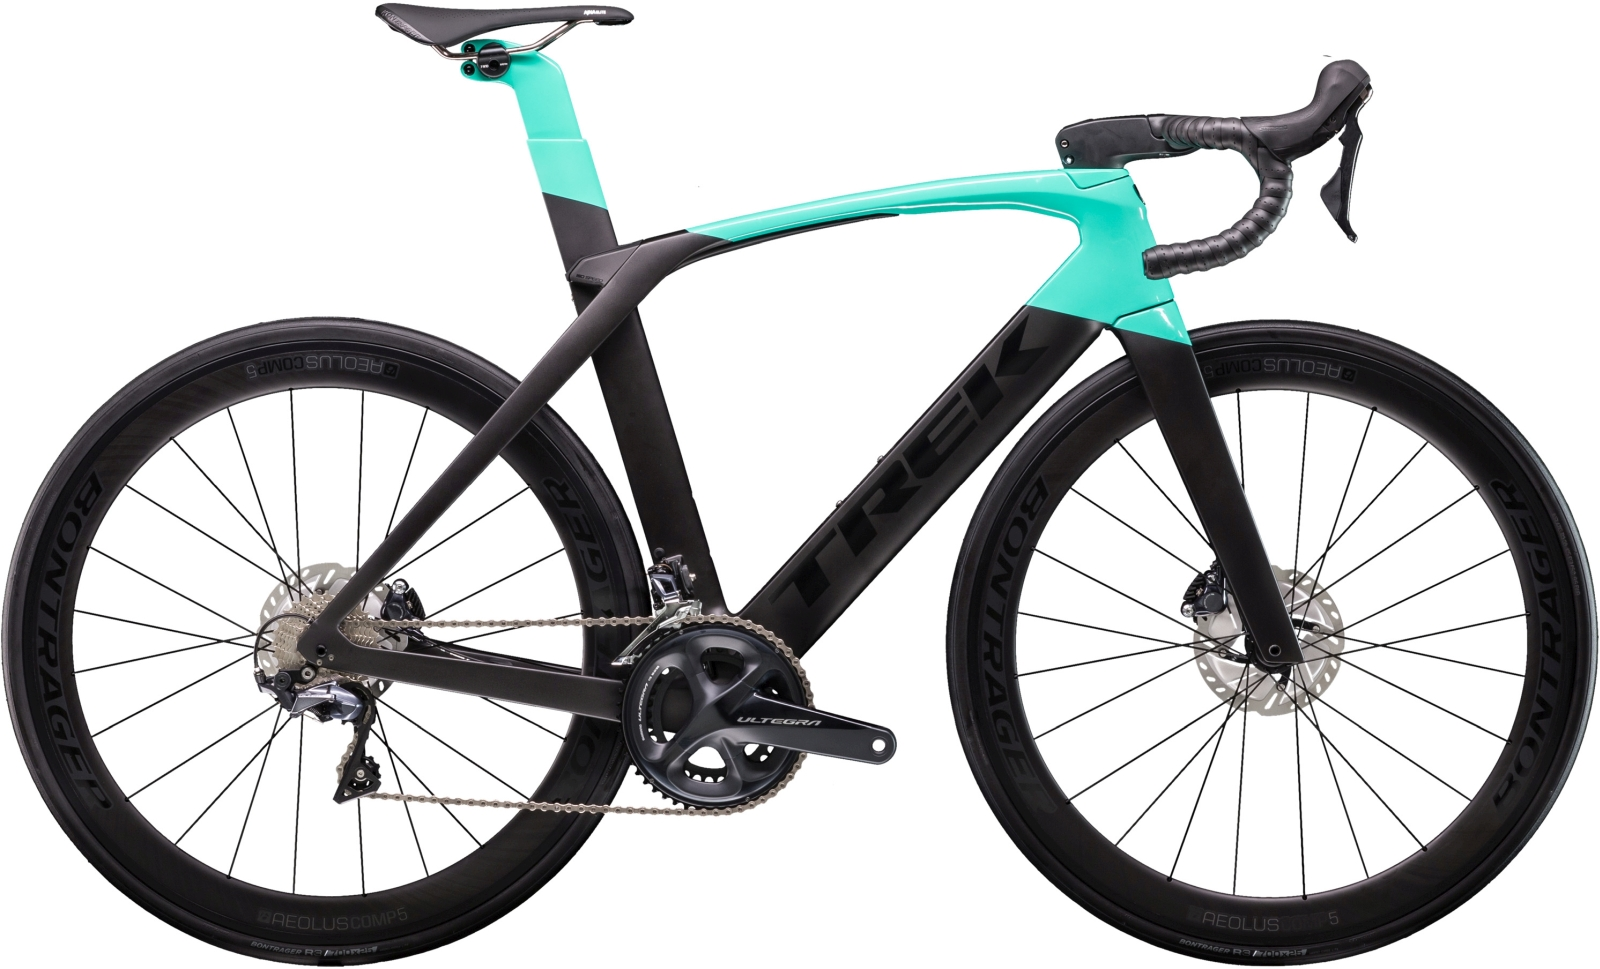 Trek Madone SLR 6 Disc Women's - Matte Black/Gloss Miami Green 54